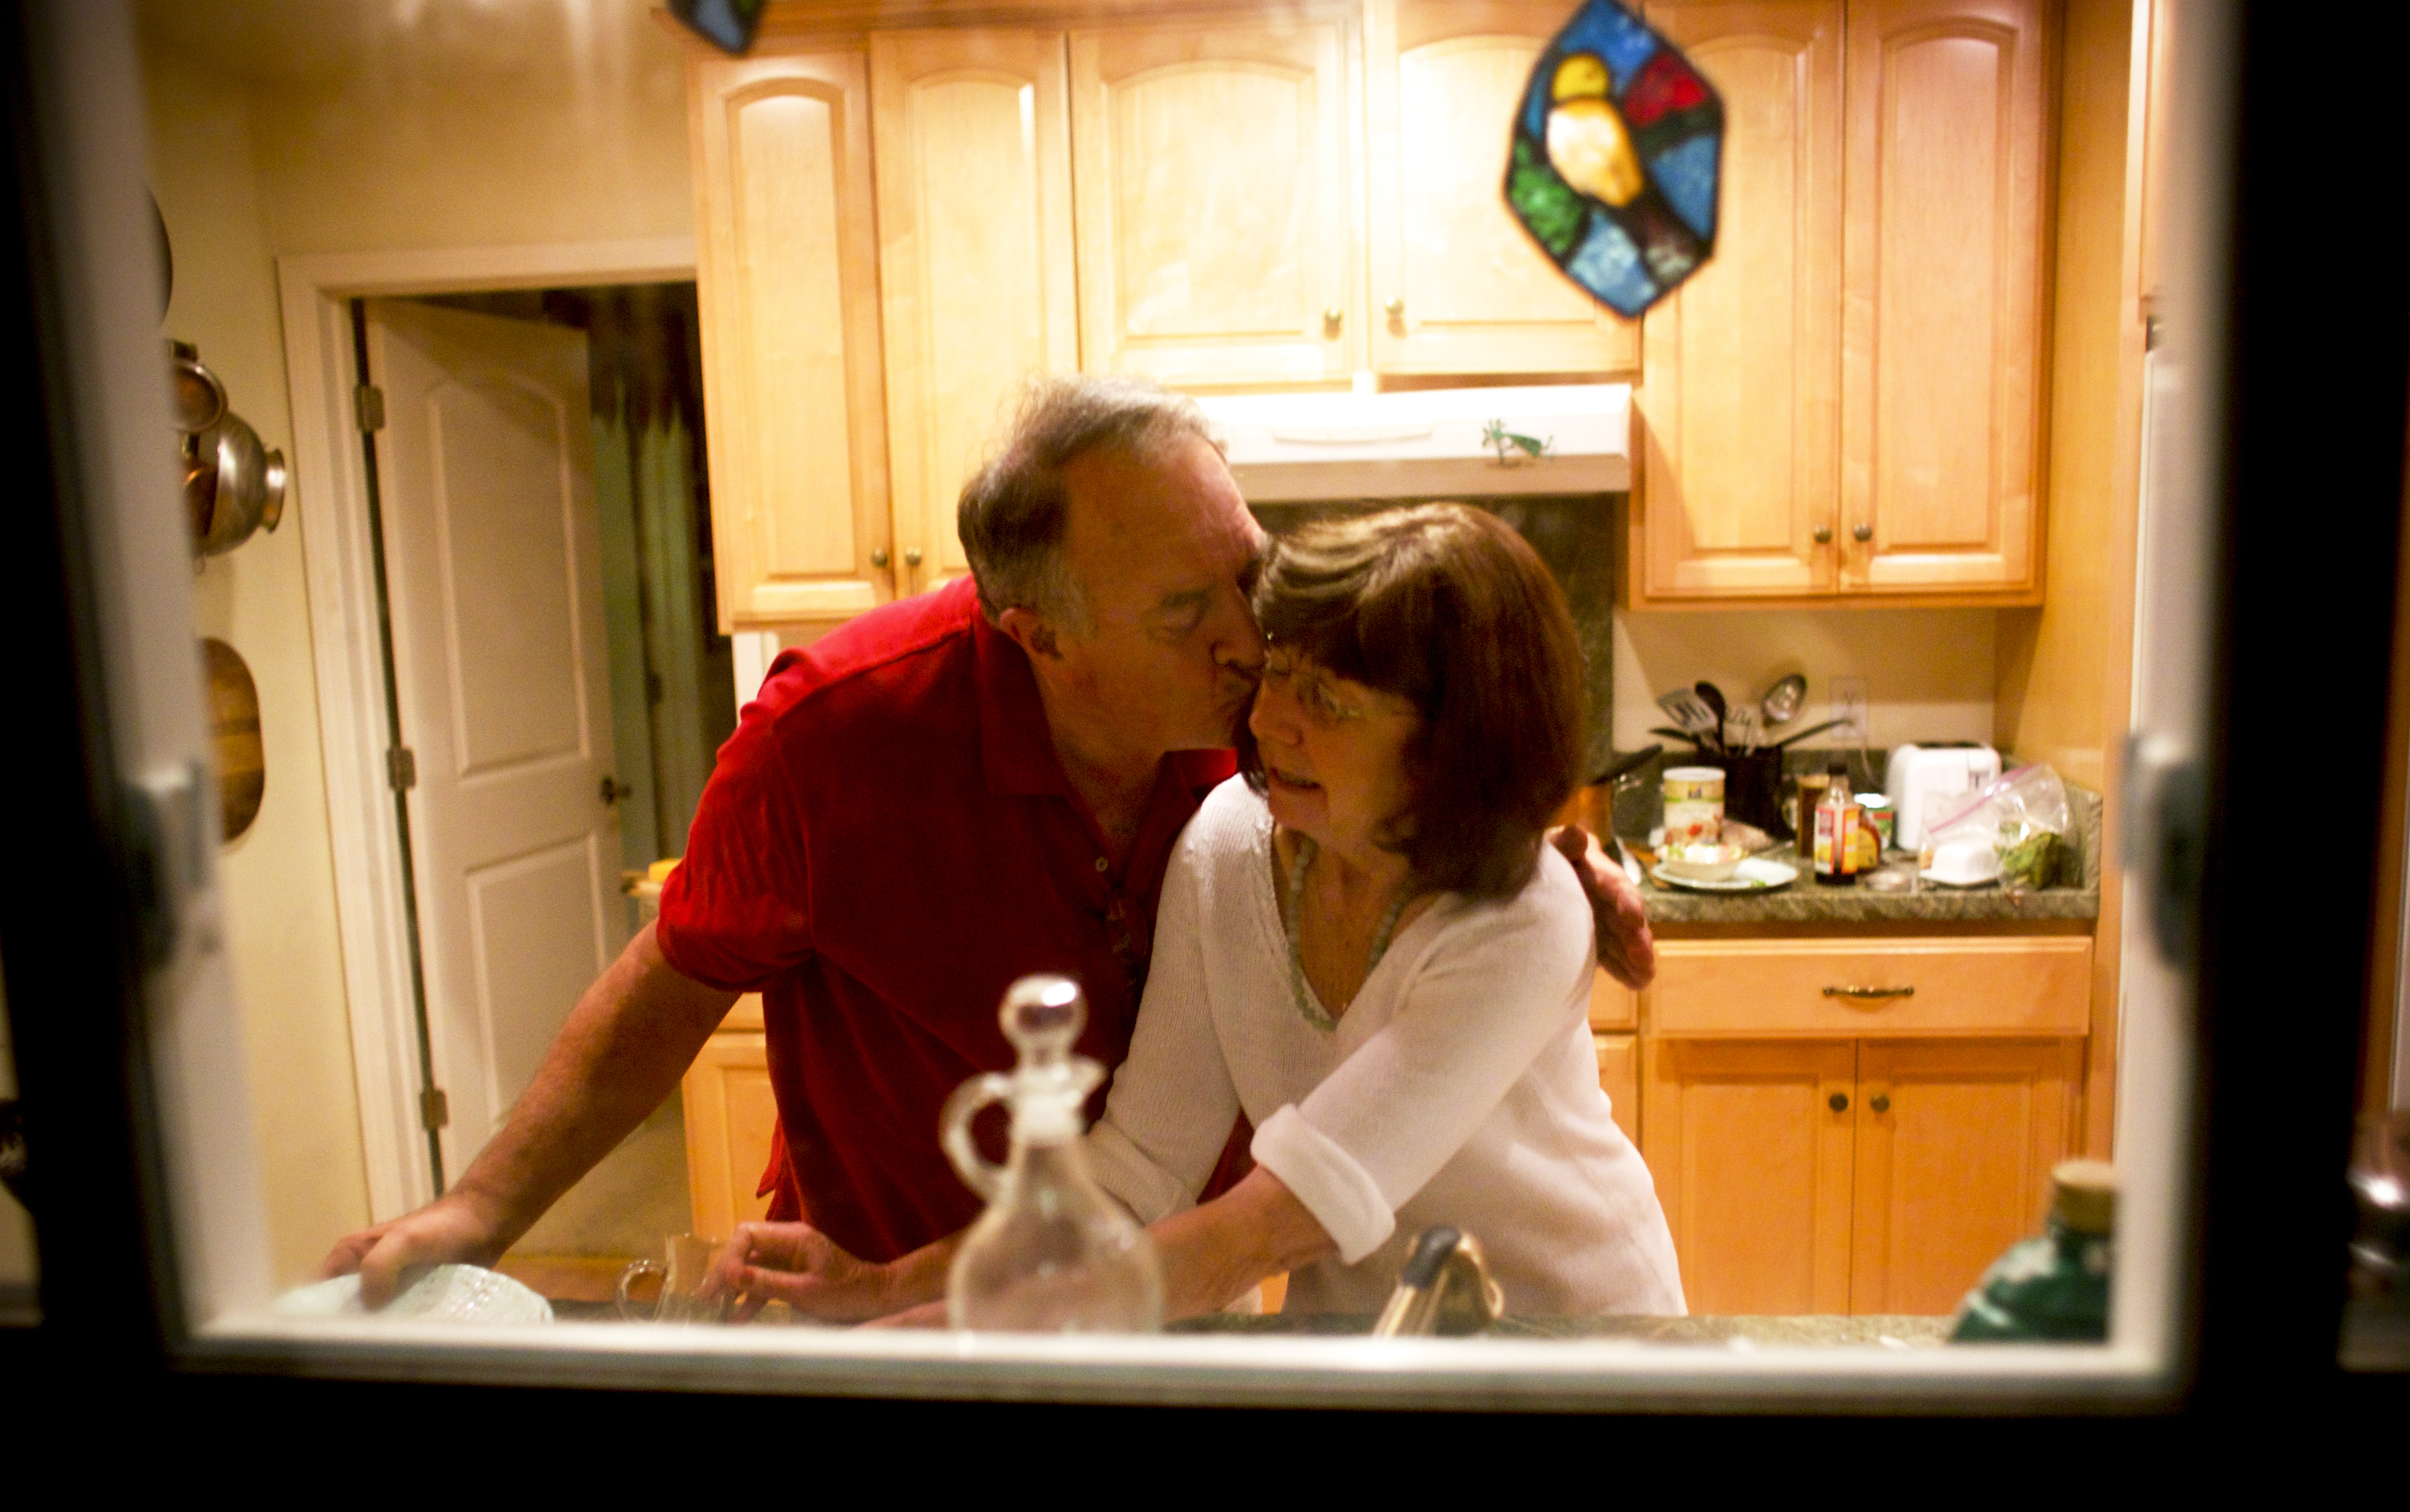 As A Husband Becomes Caregiver To His Wife, A Marriage Evolves